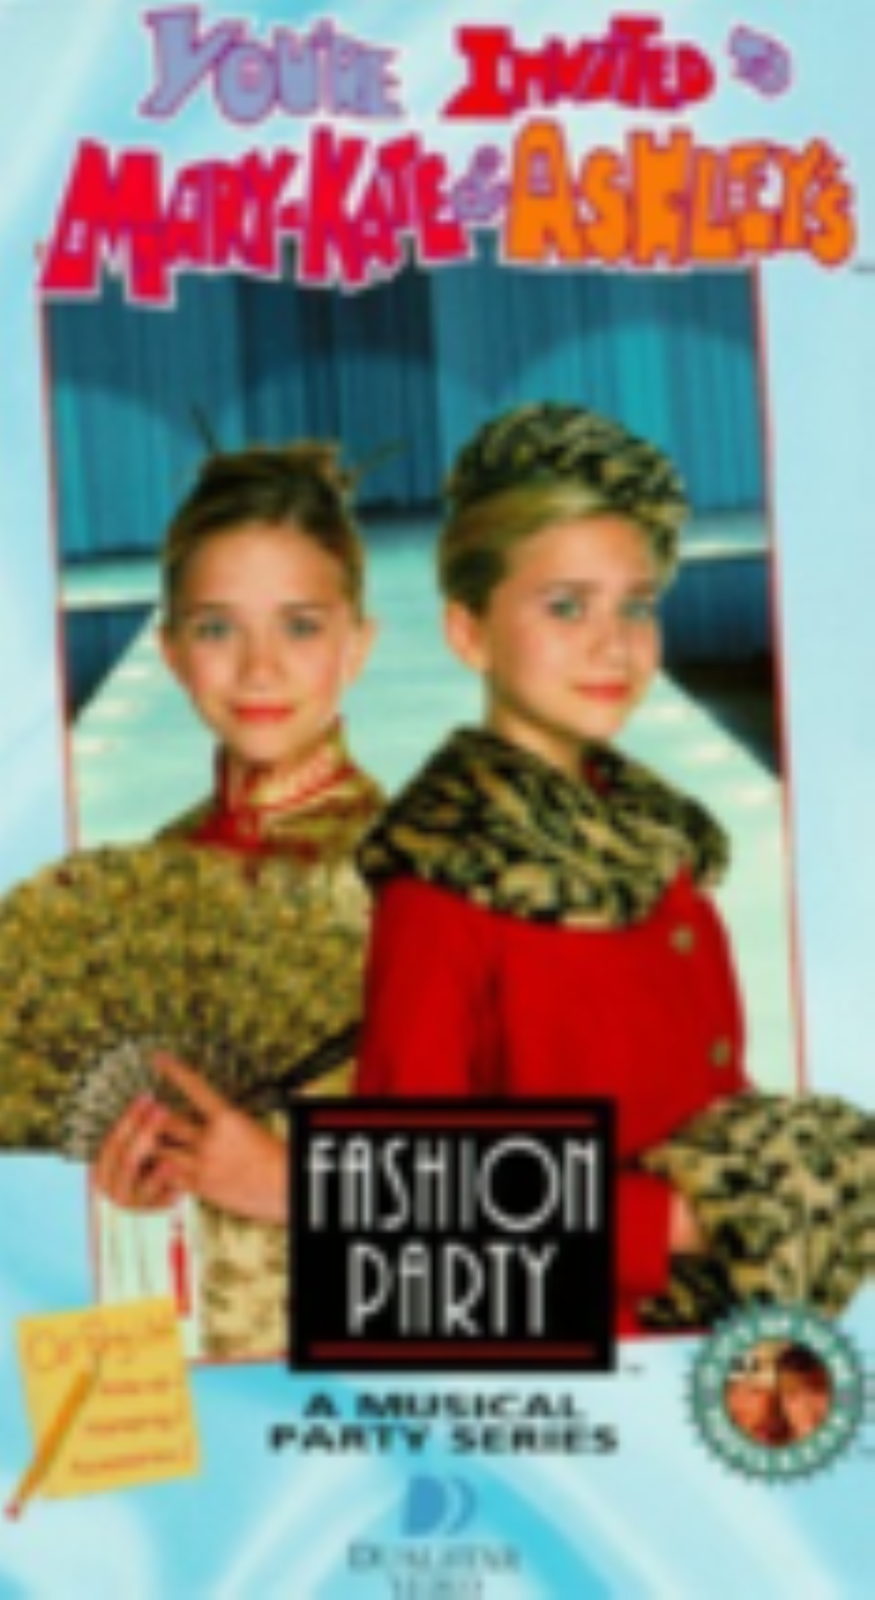 You're Invited to Mary-Kate & Ashley's Fashion Party Vhs